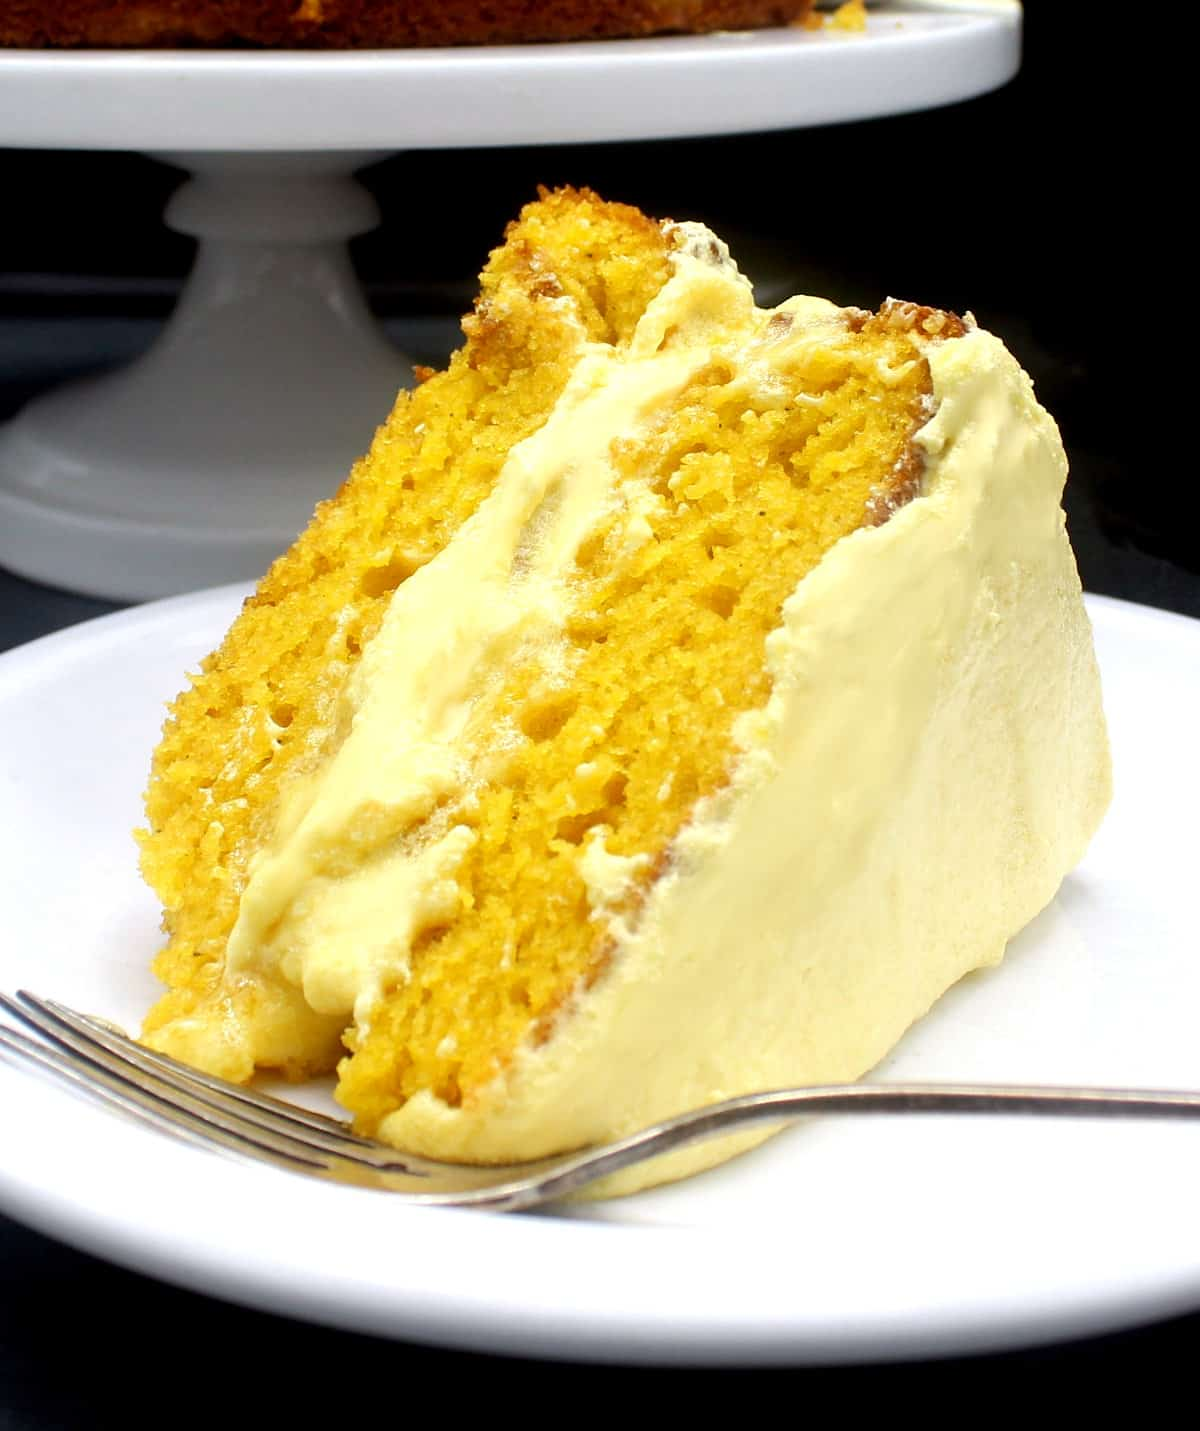 Photo of a slice of vegan mango cake with a spongy, soft, orange crumb and fluffy mango buttercream on a white plate with a fork.